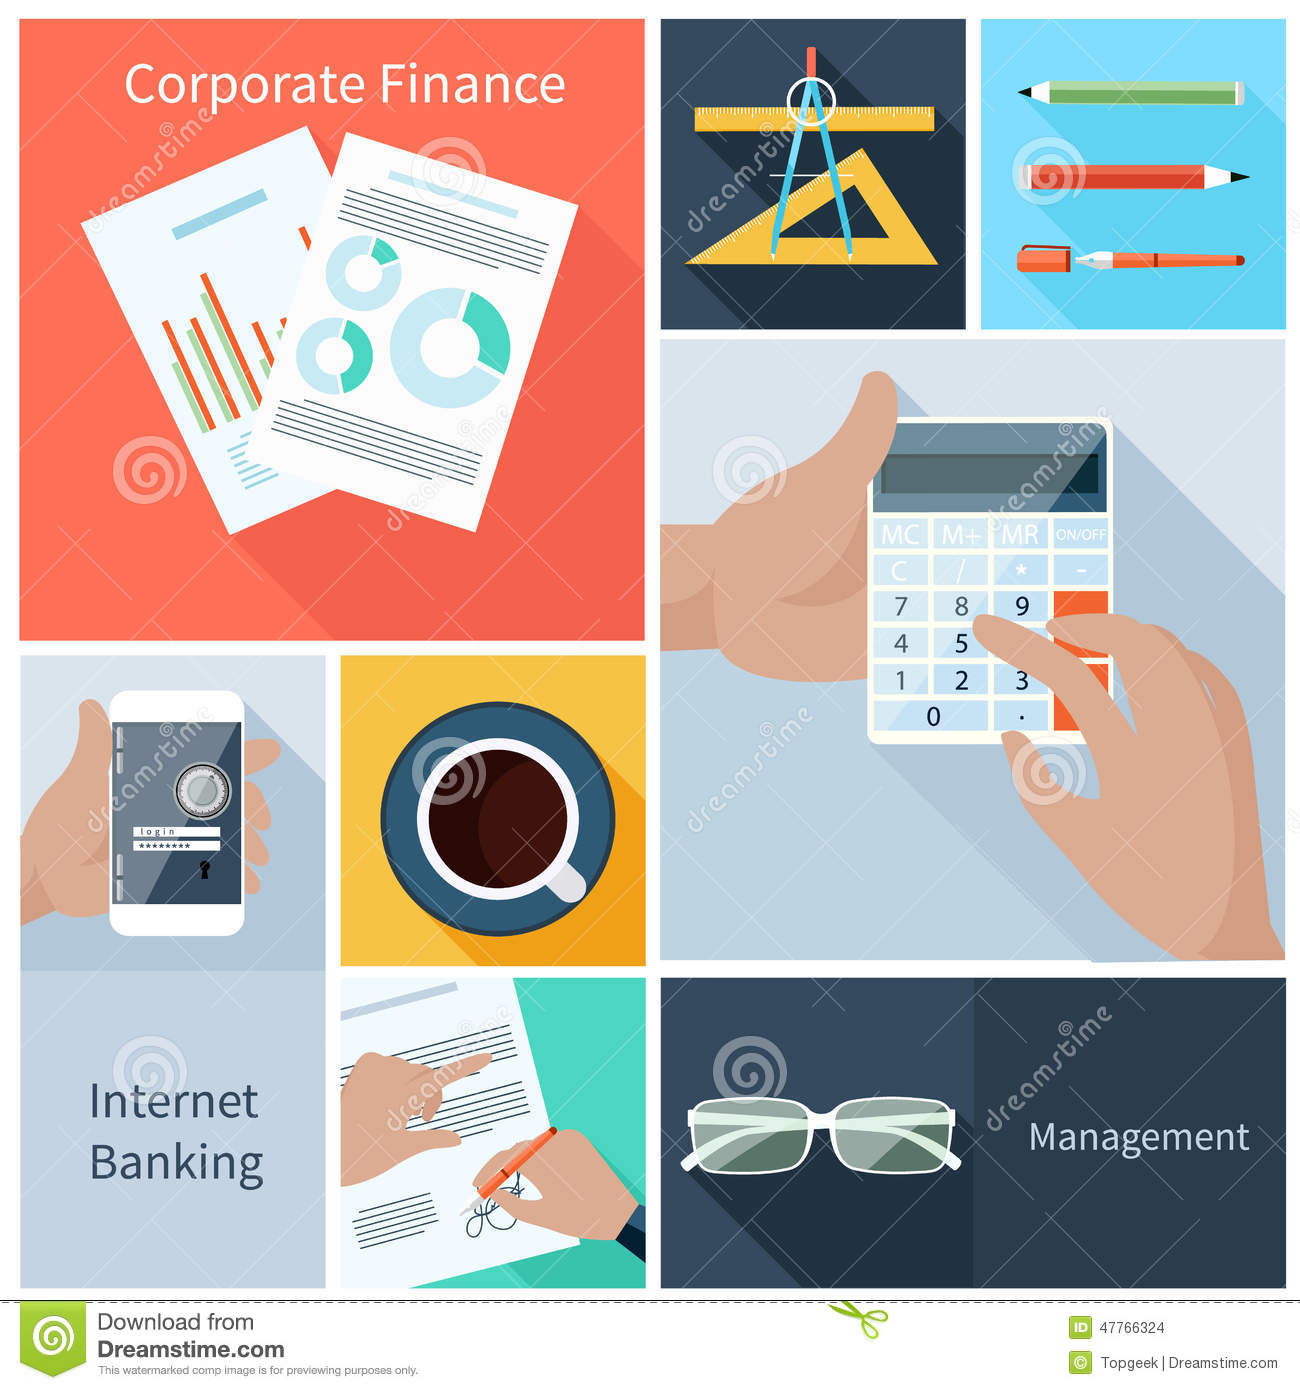 Corporate Finance: Corporate Finance, Web Banking, Management Concept Stock